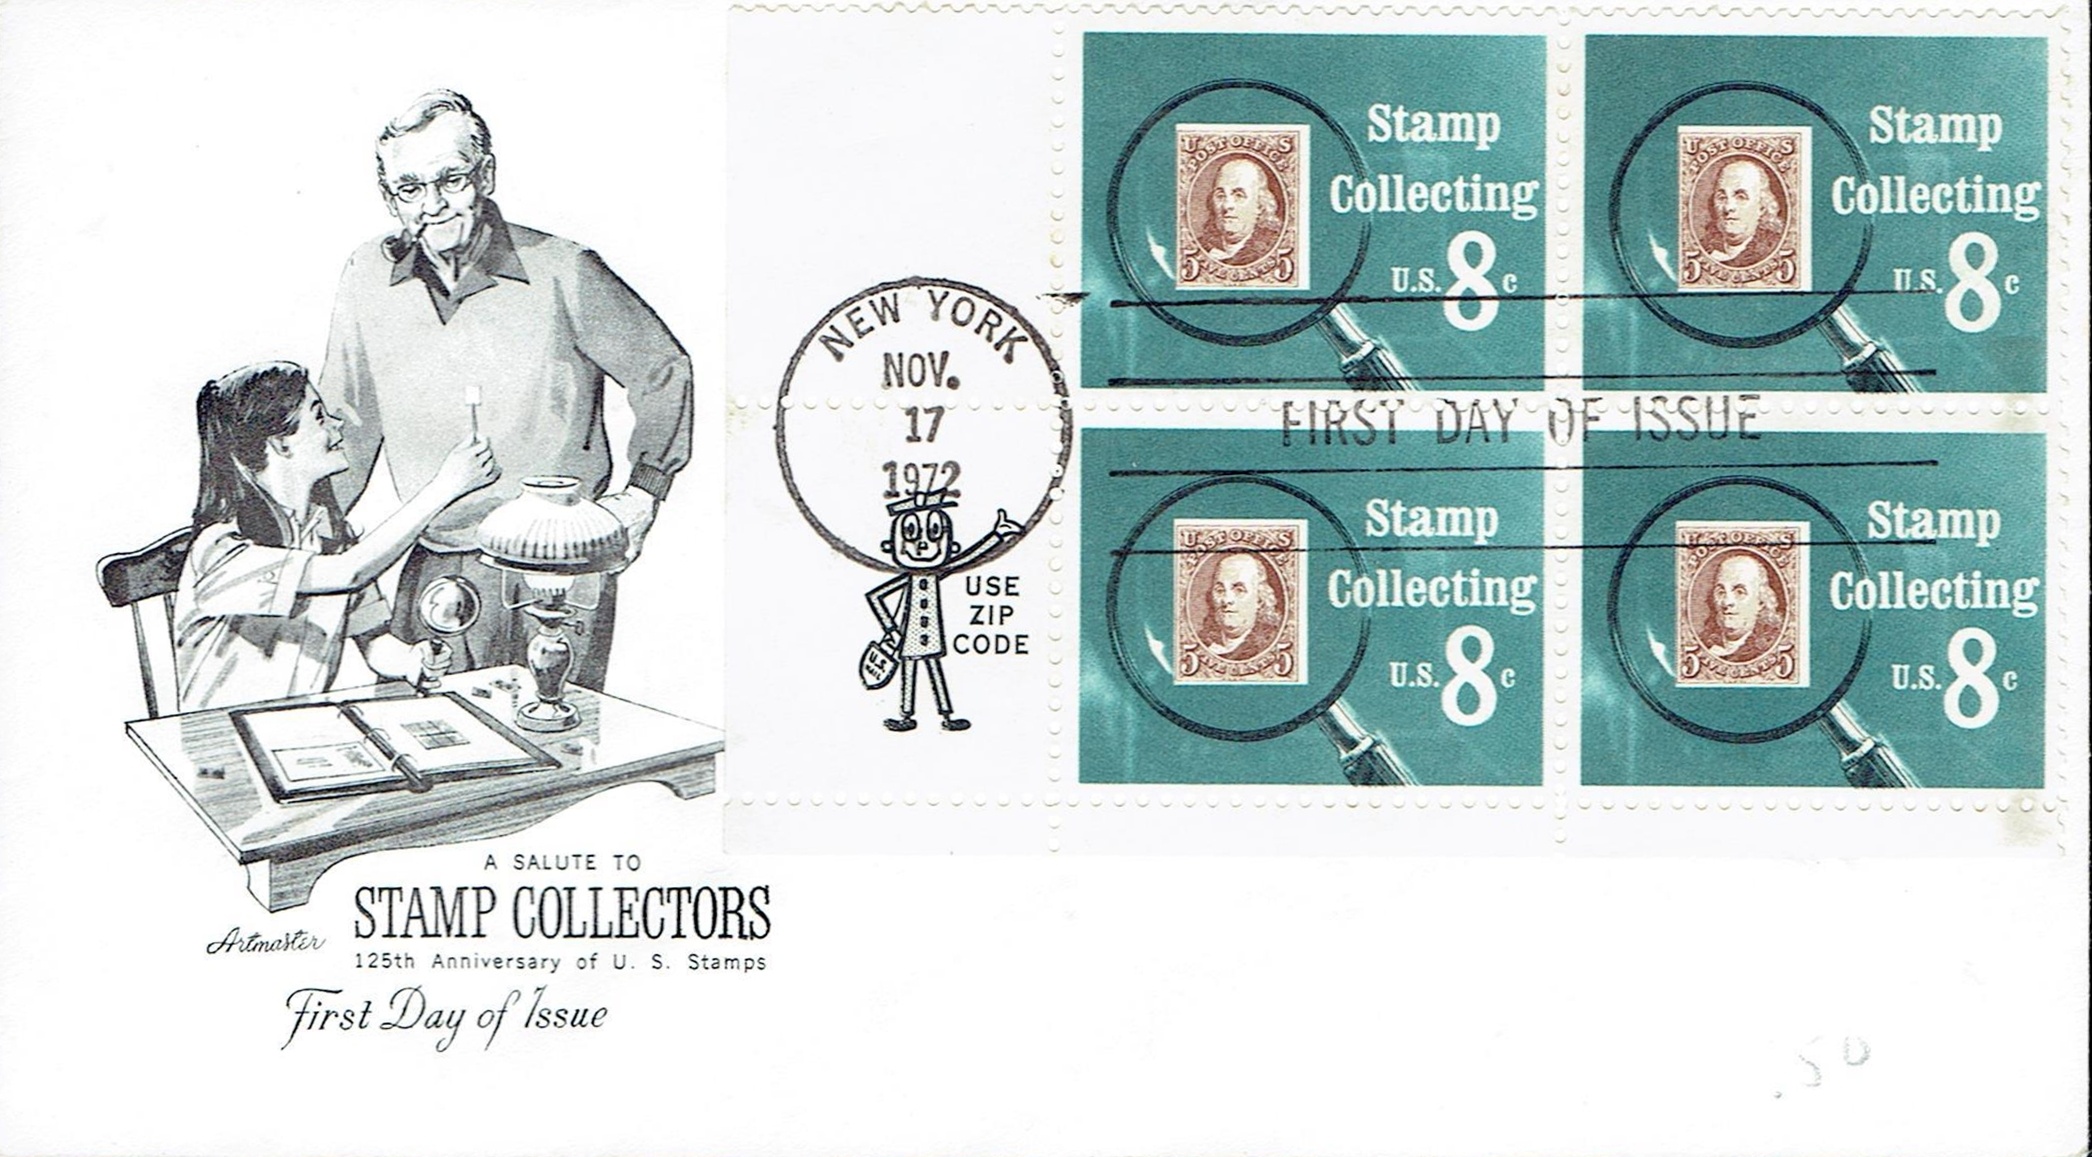 United States - Scott #1474 (1972) first day cover, Artmaster cachet